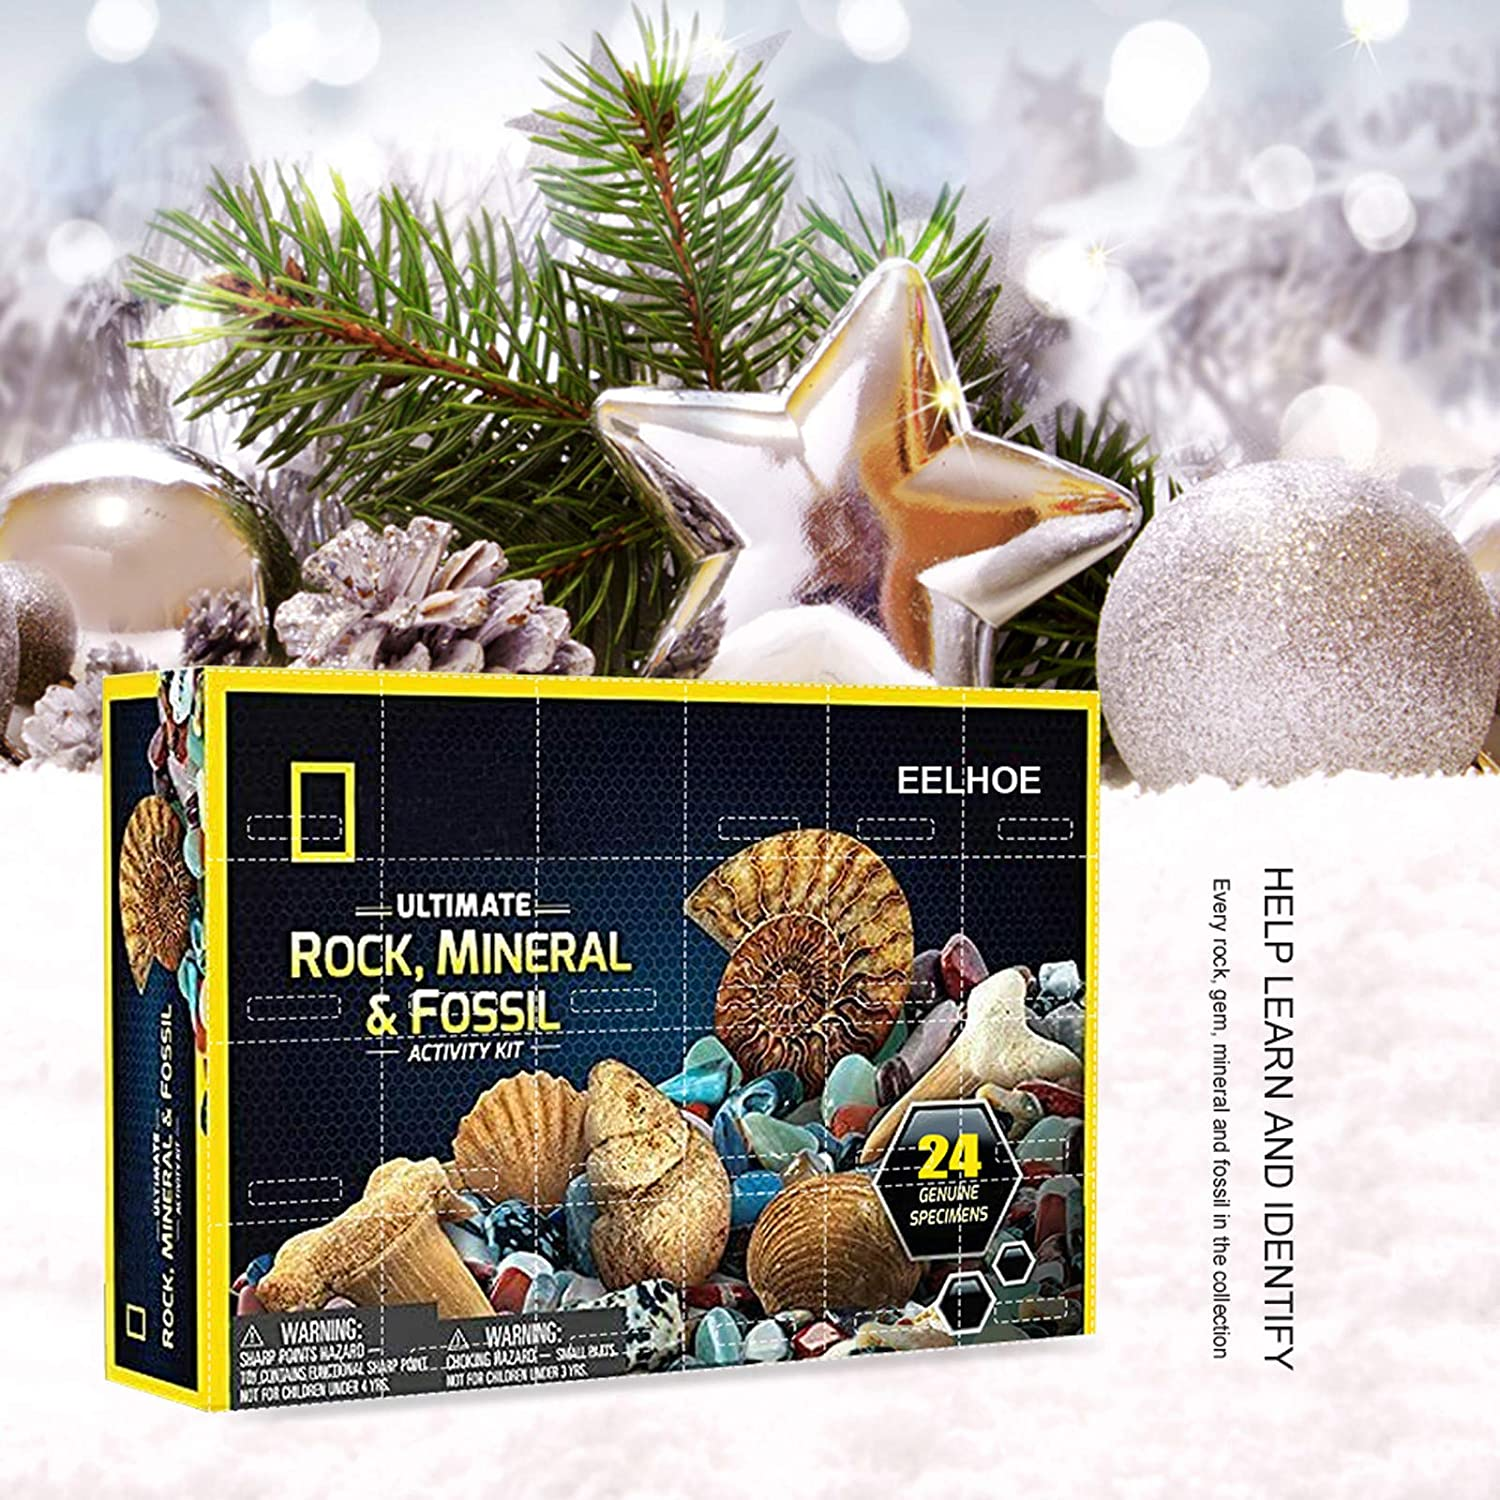 A 24-Piece Rocks Collection 2020 Count Down Advent Calendar National Geography Rocks /& Fossils Kit Educational Toys Gift for Kids Boys Girls Rock and Mineral Collection Activity Kit